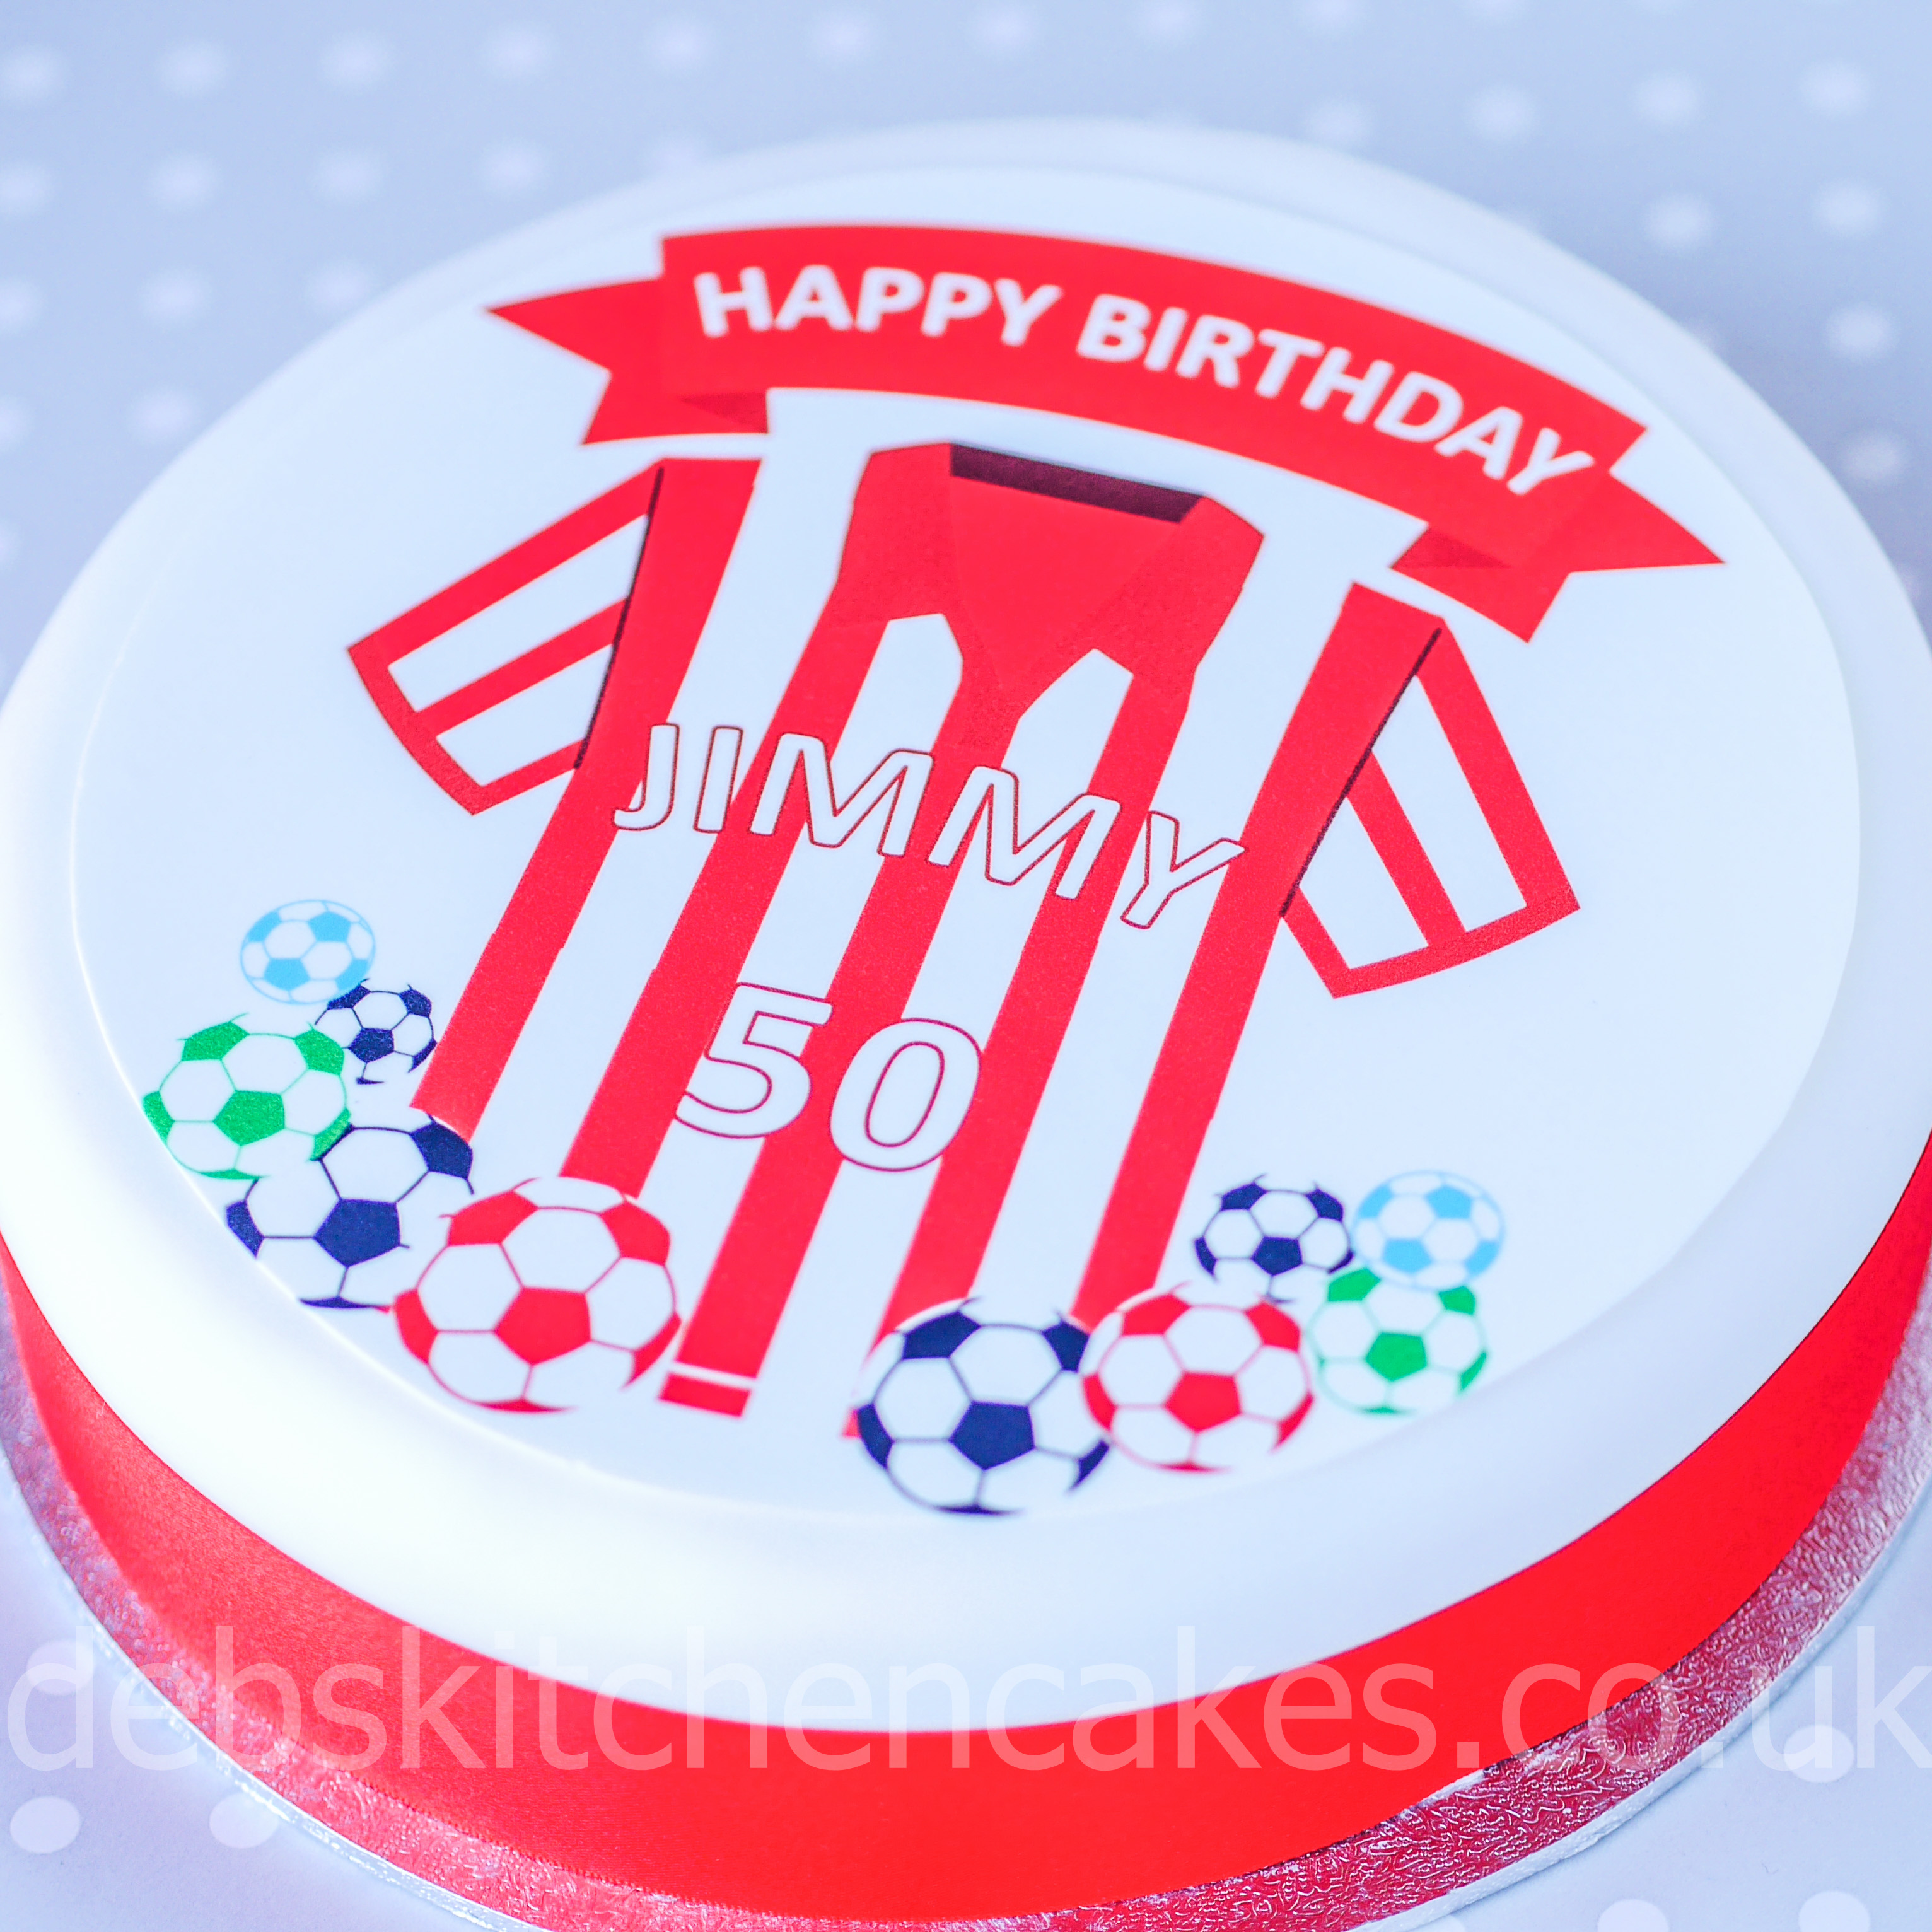 Cake Toppers Uk Birthdays : Cake Toppers :: Birthday Cake Toppers :: Children s ...